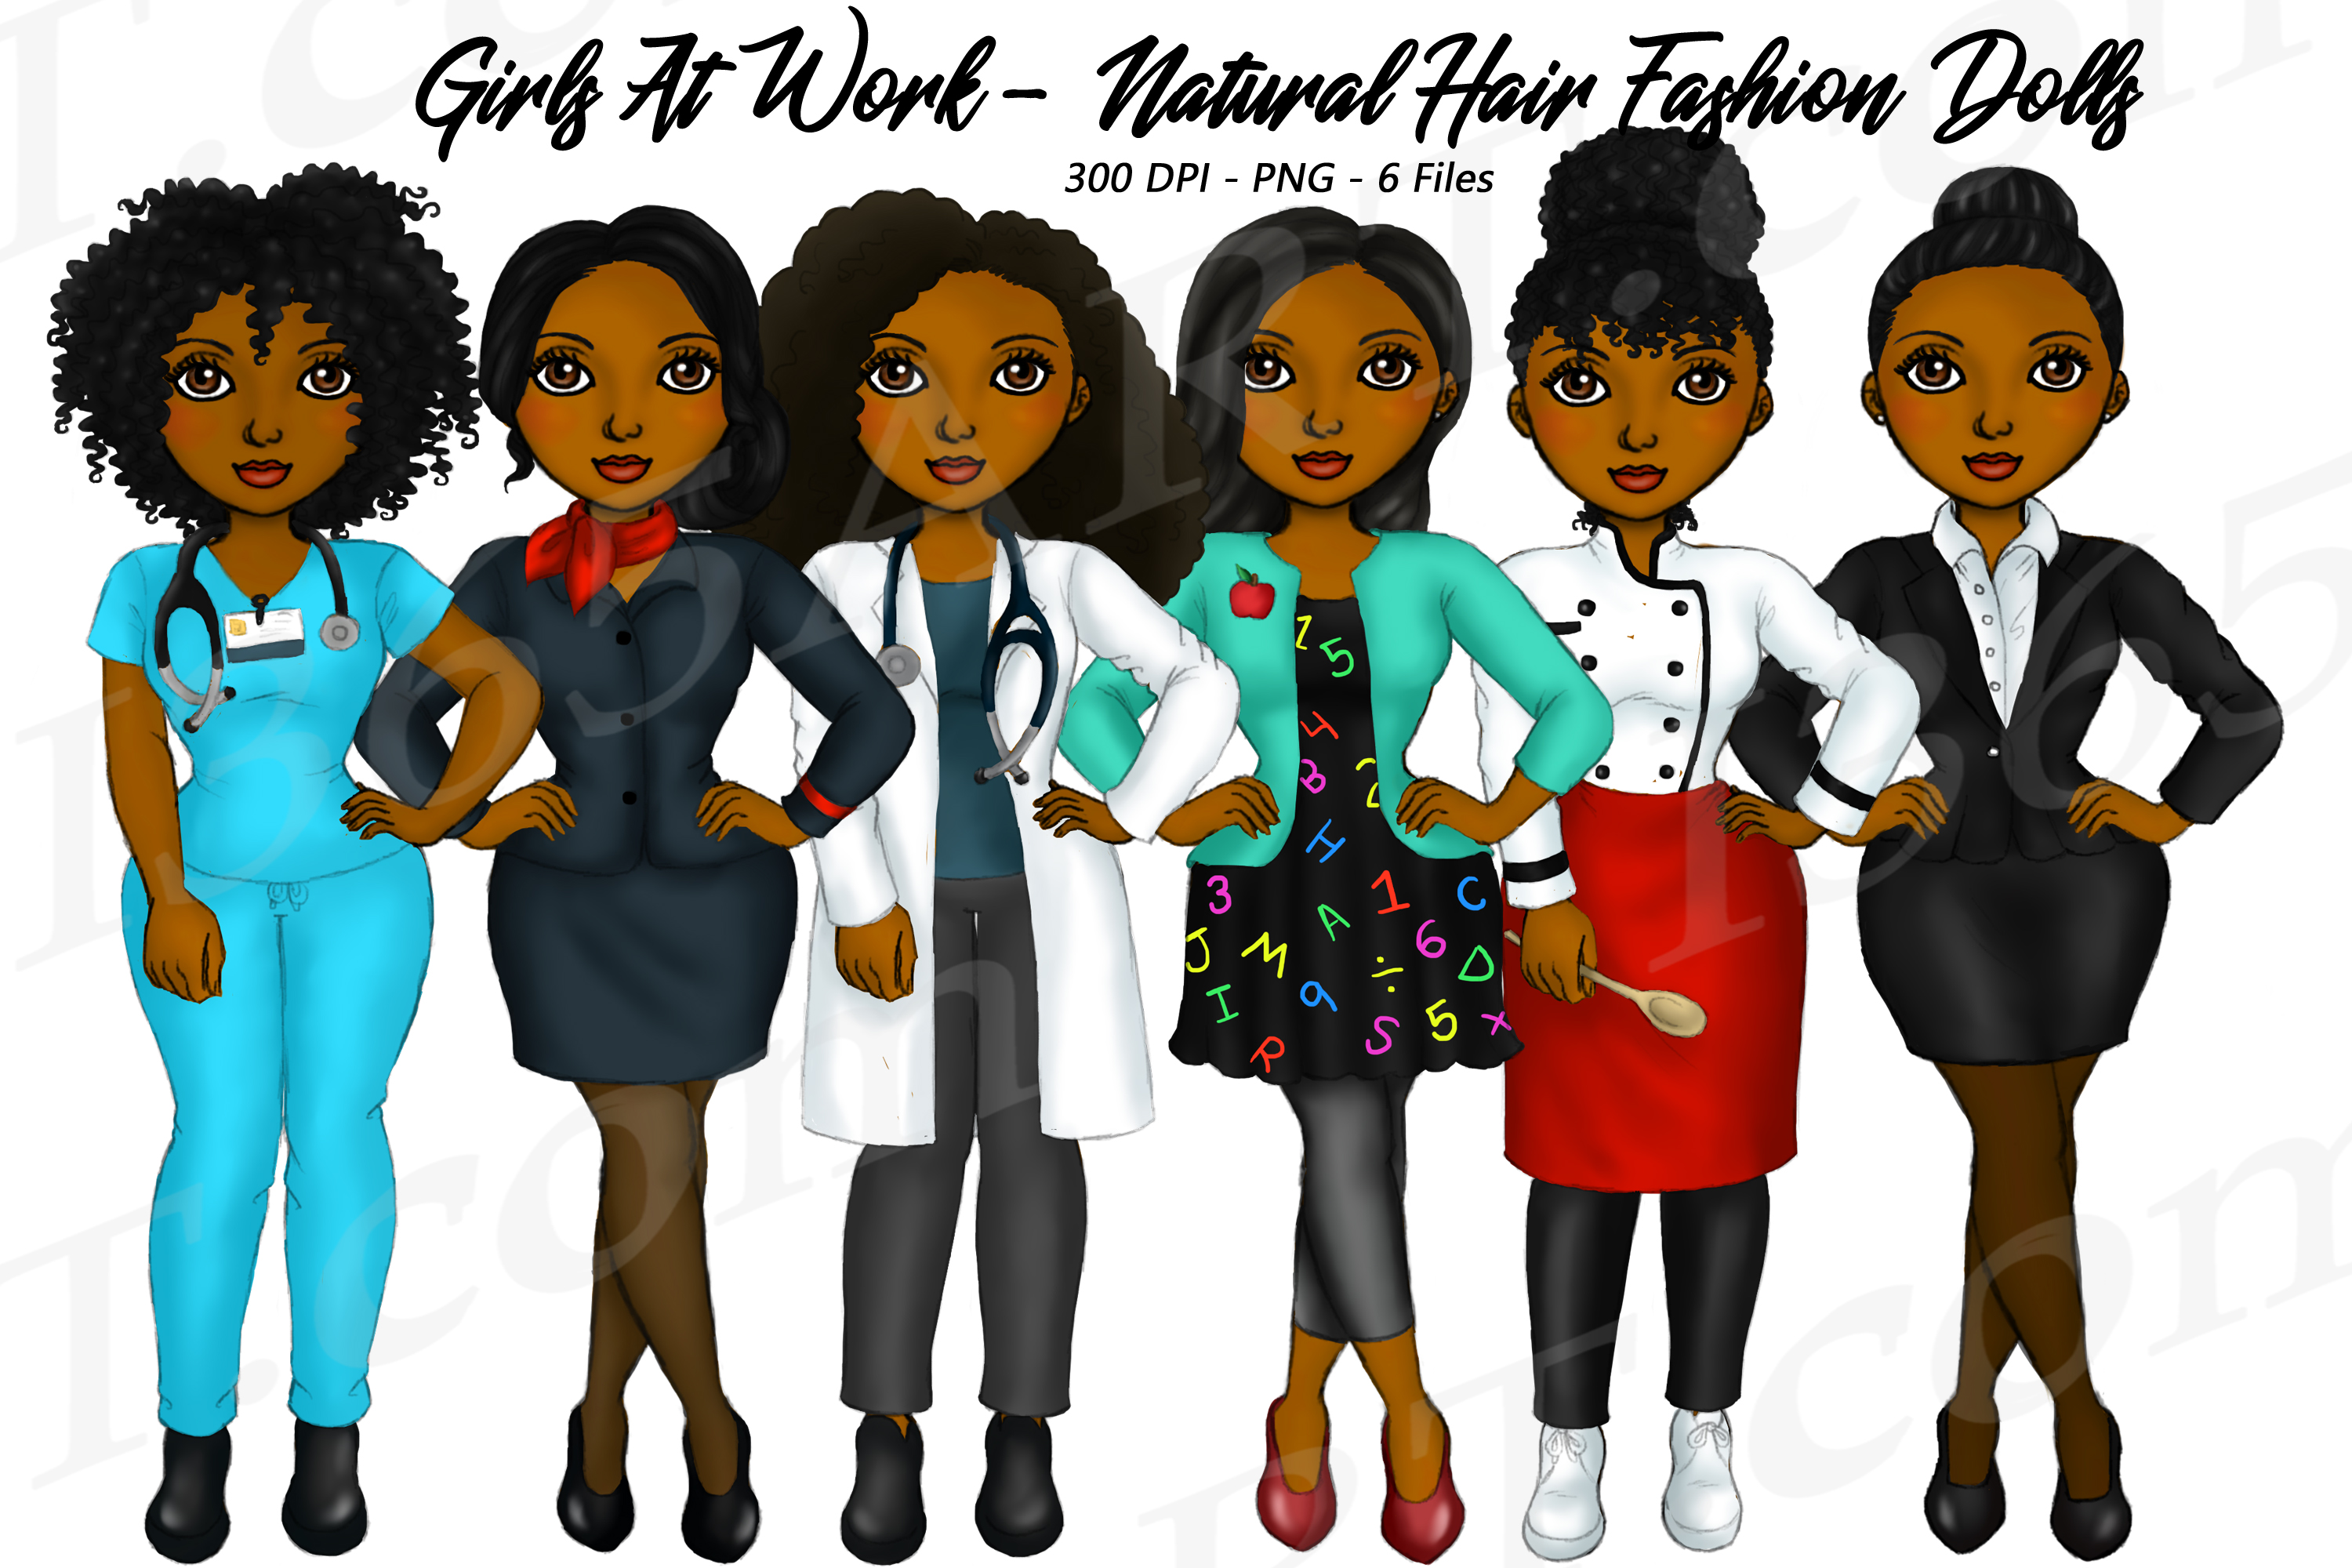 Girls At Work Clipart Natural Hair Fashion Dolls PNG.